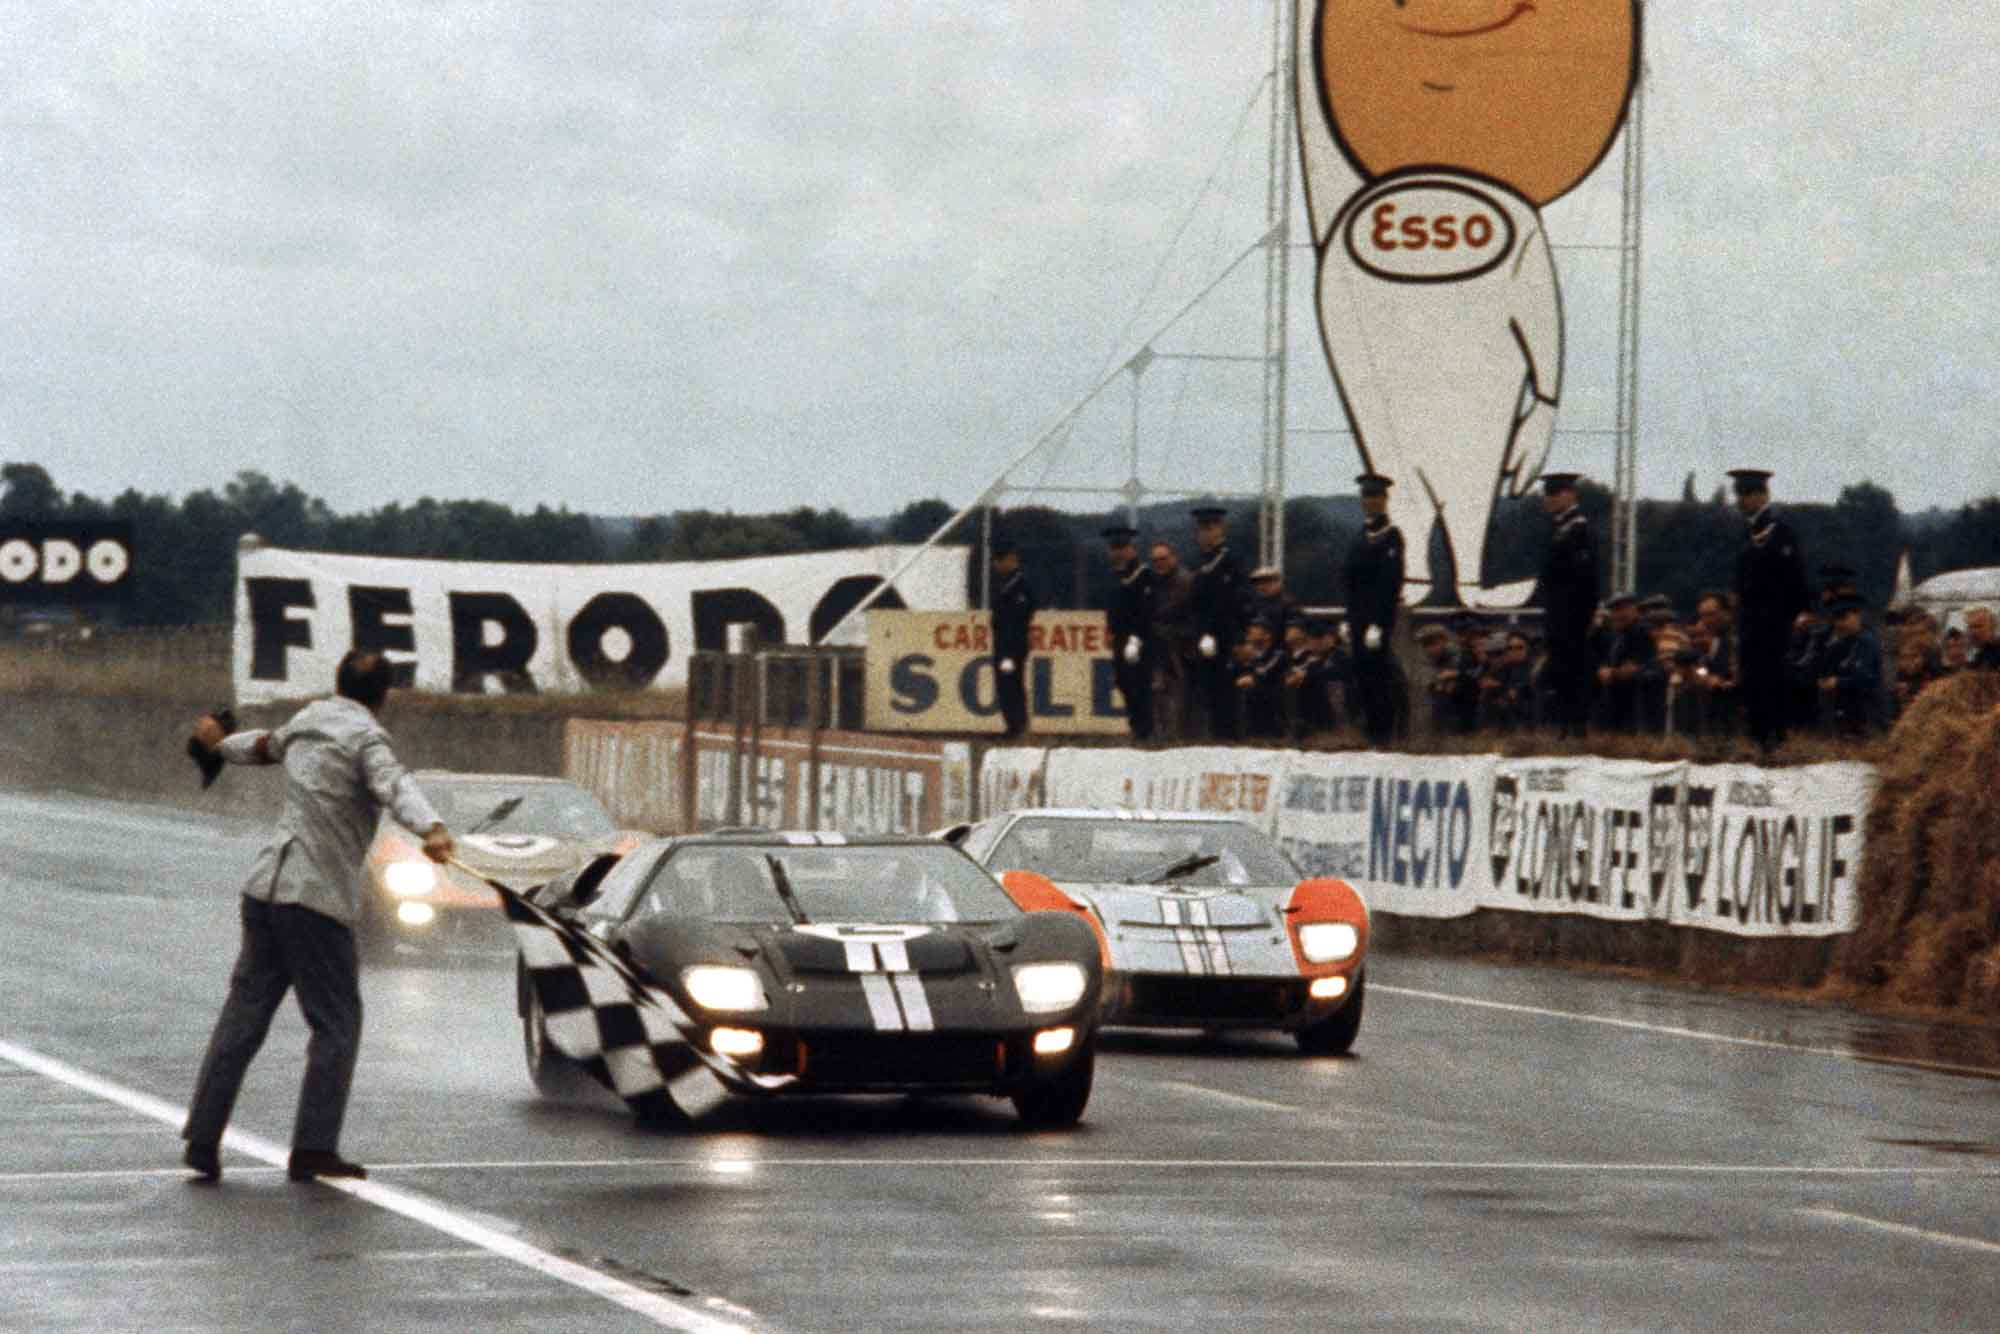 American Shelby team Ford GT40s take a one-two finish at Le Mans 1966, cars driven by Chris Amon/Bruce McLaren and Ken Miles/Denny Hulme